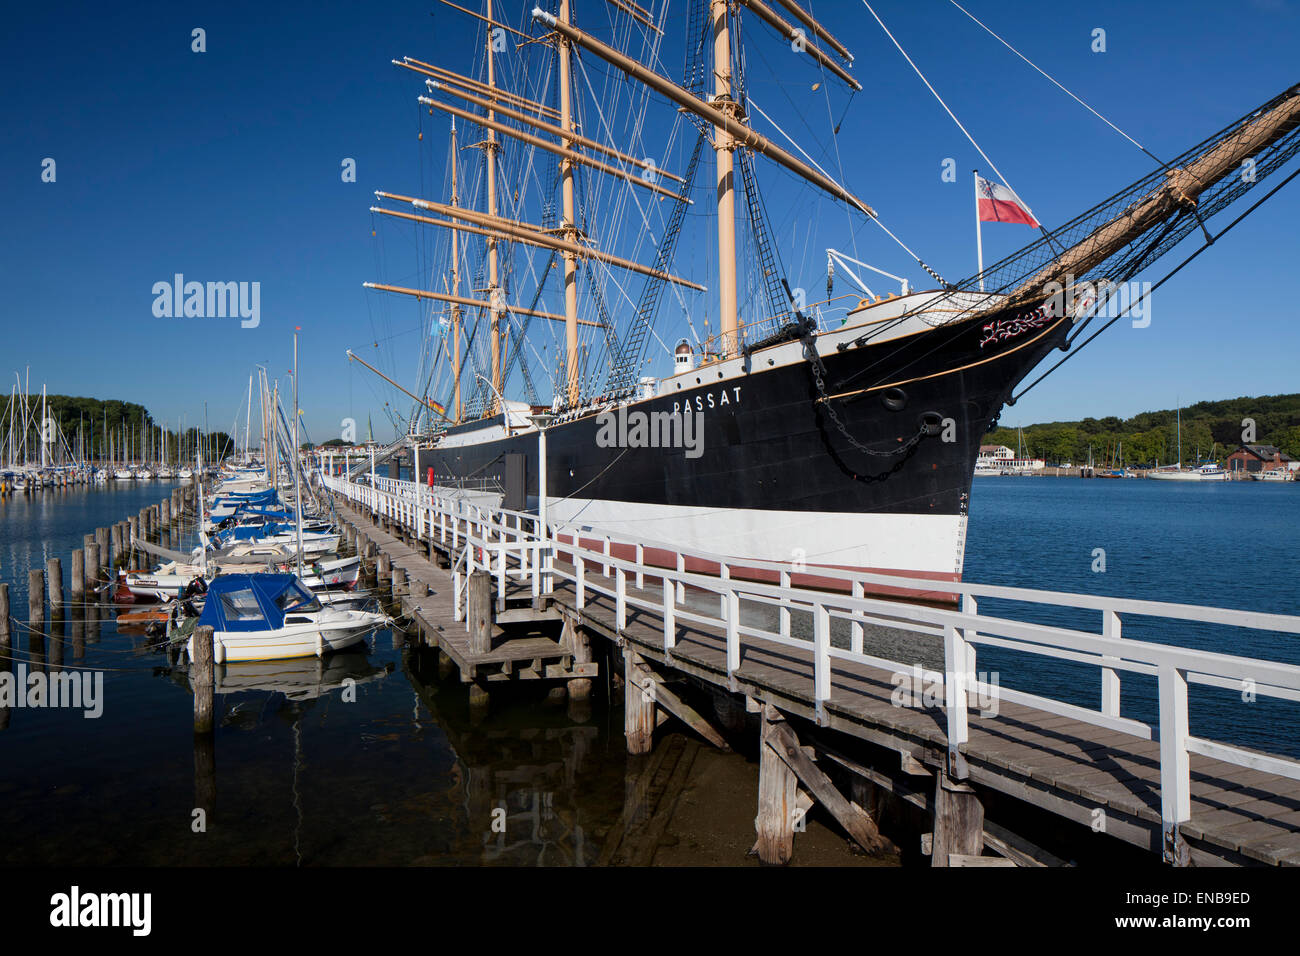 The museum sailing ship Passat, a German four-masted steel barque at Travemünde, Hanseatic town Lübeck, - Stock Image